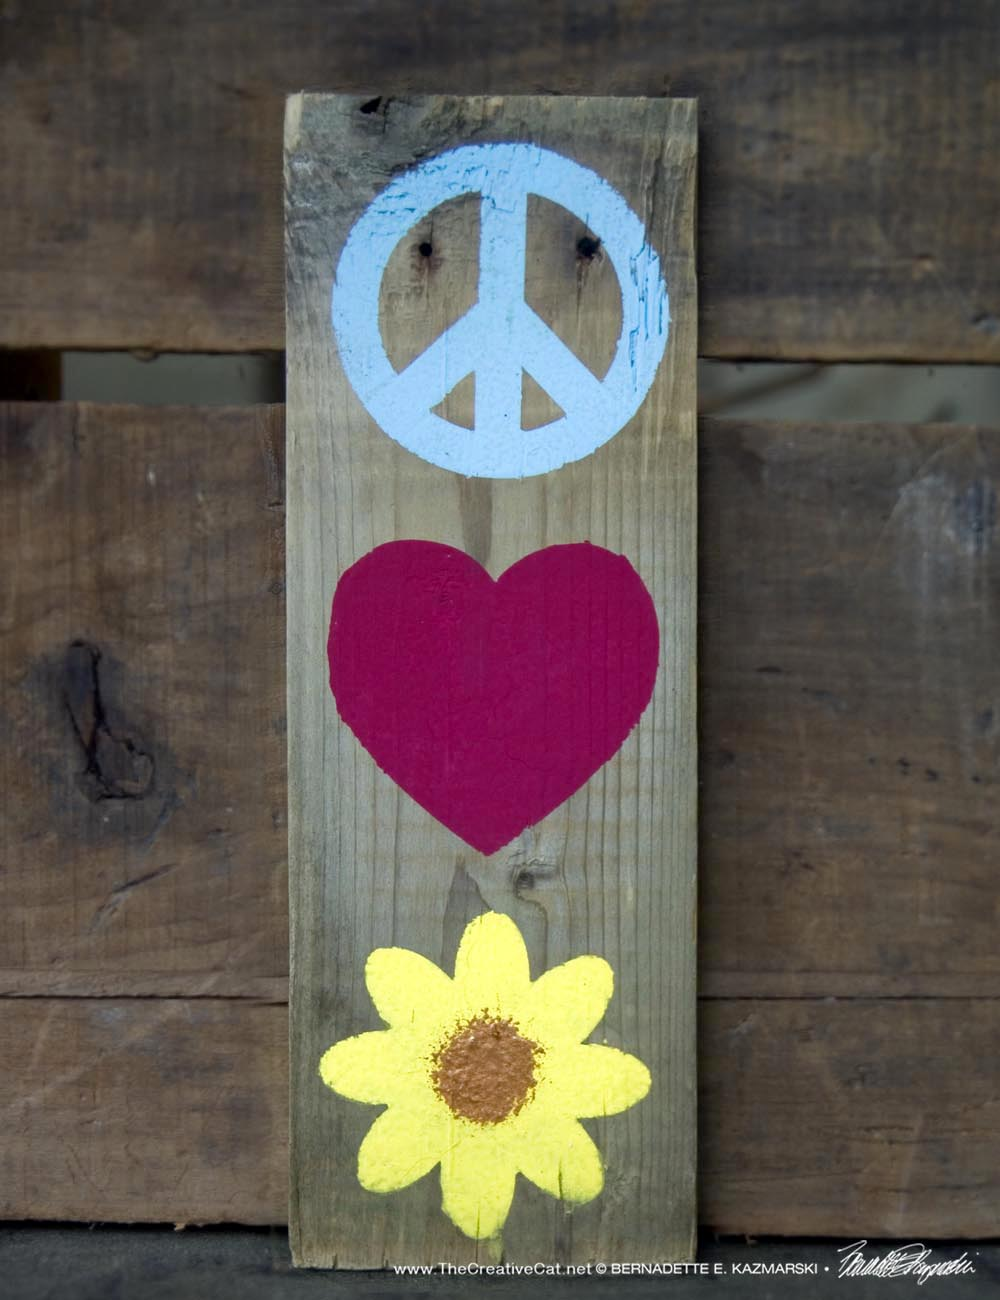 Peace, Love and Flowers, or Nature, or...